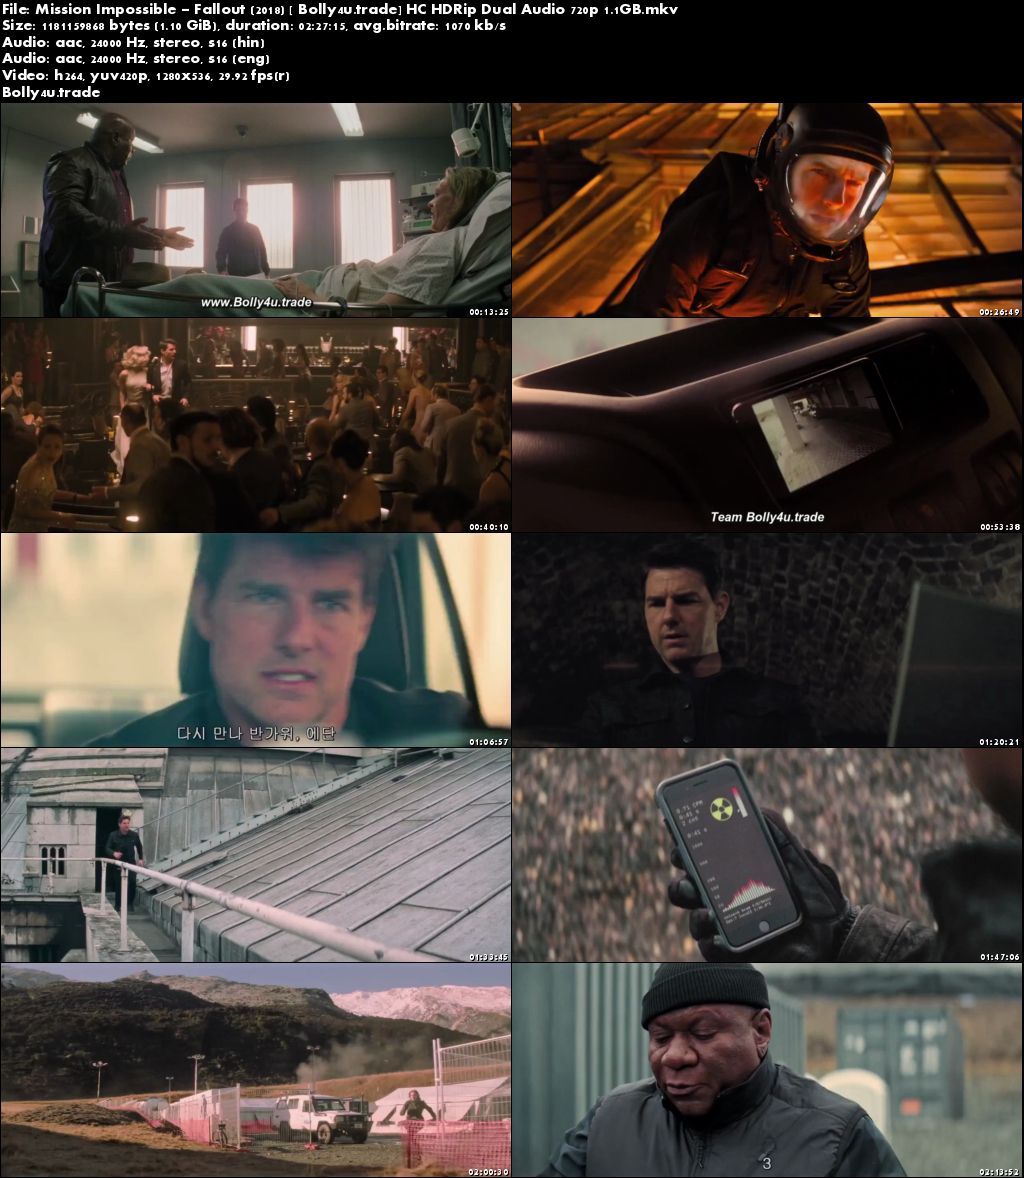 Mission Impossible Fallout 2018 HC HDRip Hindi Dual Audio 720p Download